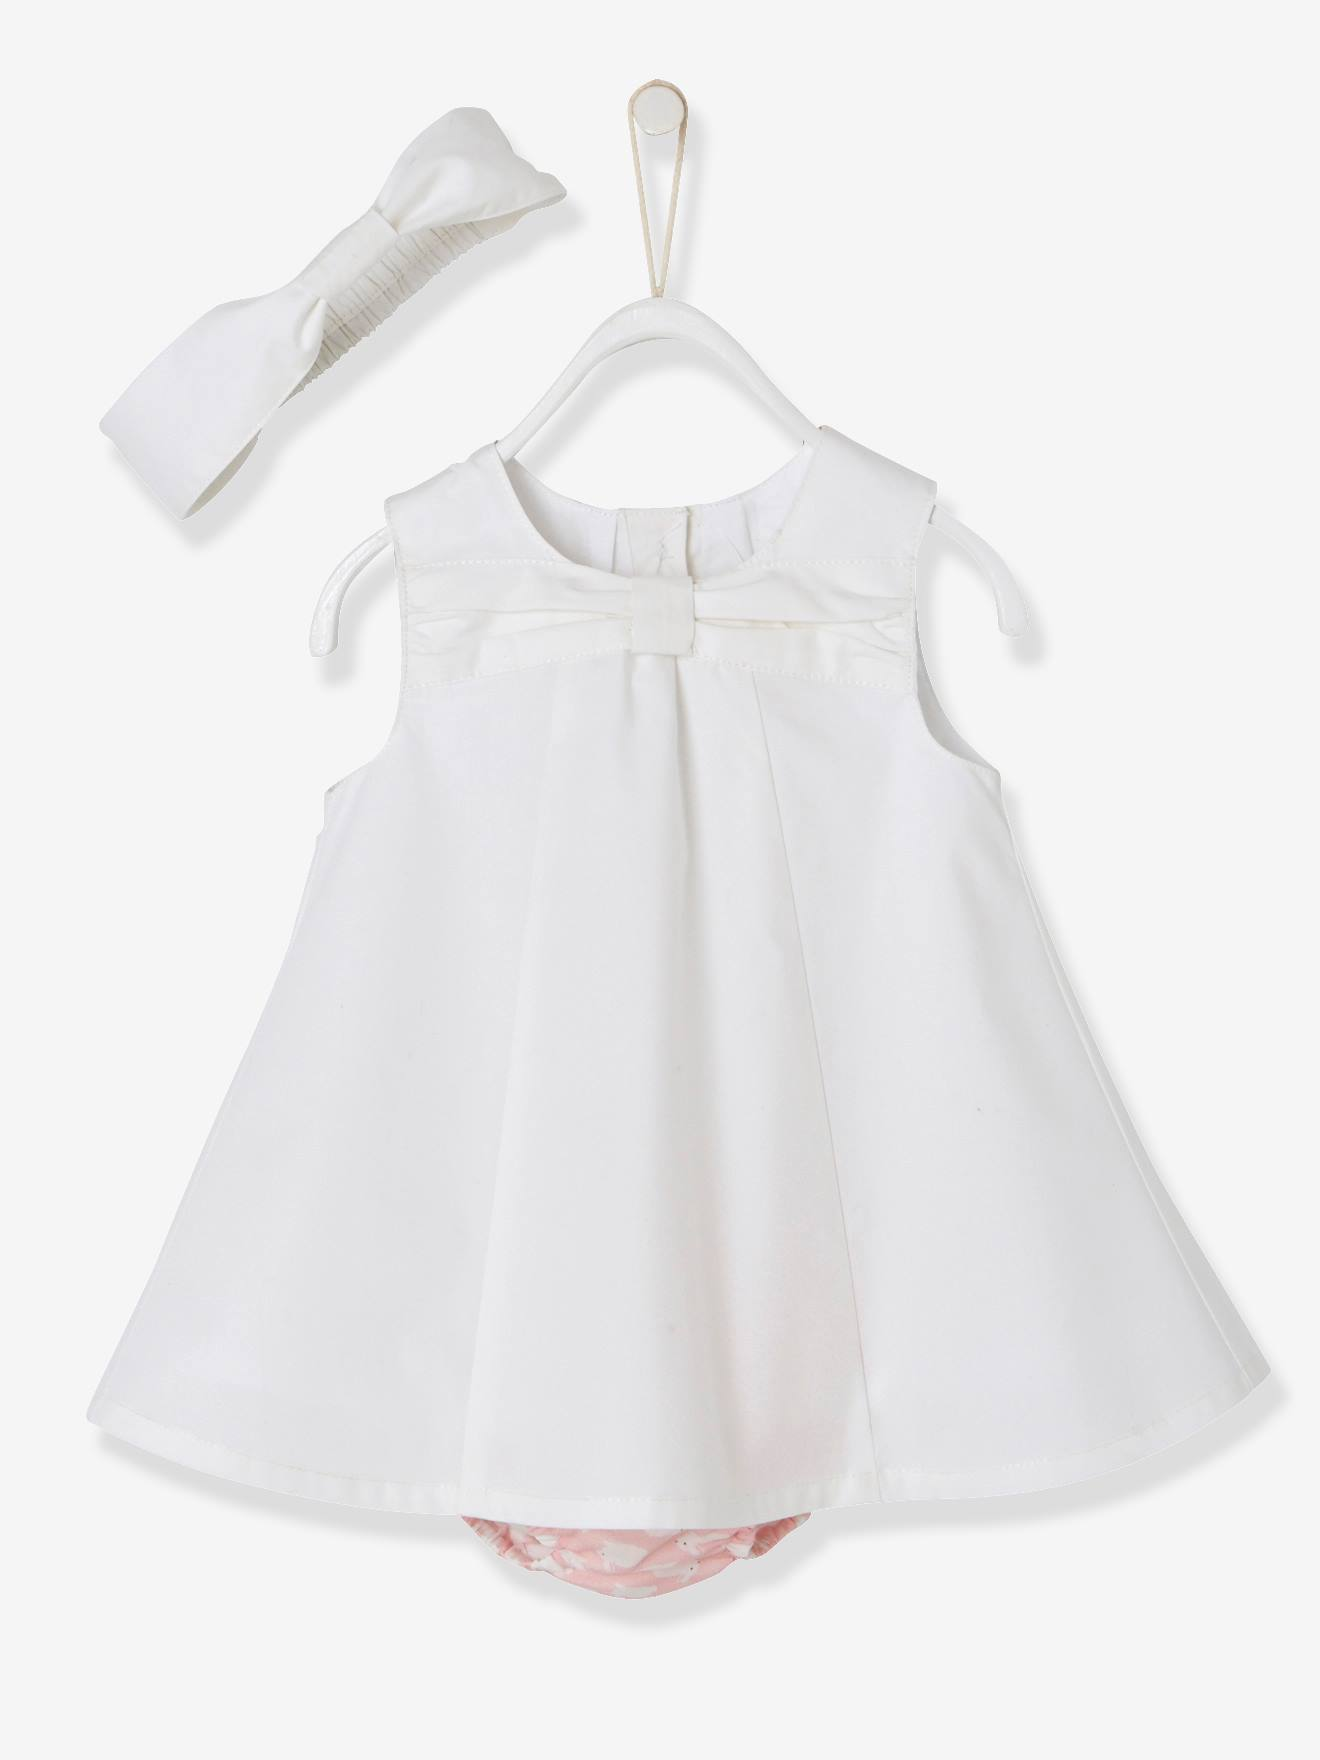 Baby Girls 3 Piece Outfit Dress & Shorts & Headband Bunny Rabbit